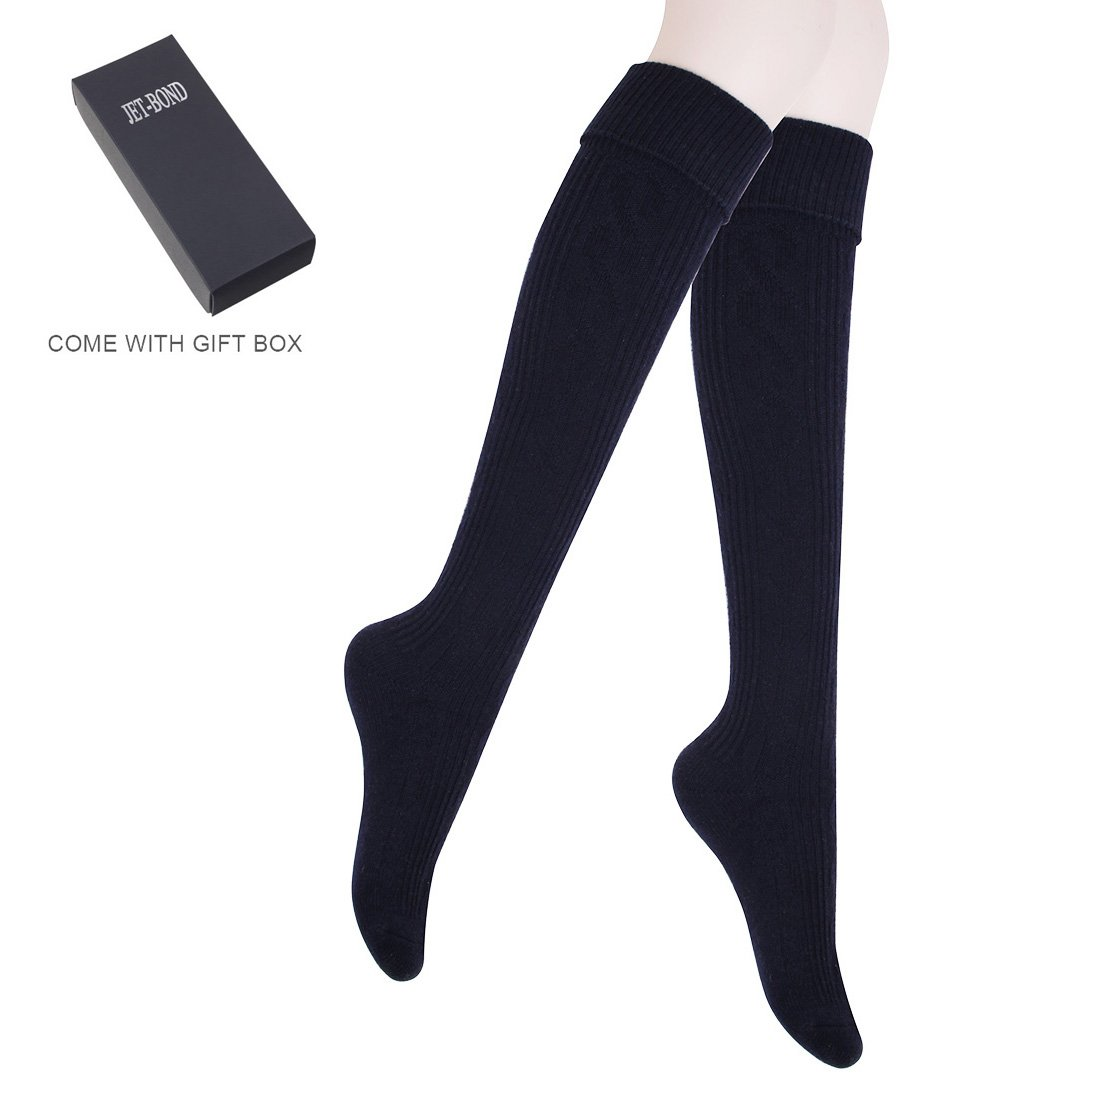 JET-BOND Thick Wool Woollen Cashmere Thigh High Knee Socks Warm Stockings Knit Sweater Thickening Leg Warmers FS03 TS008